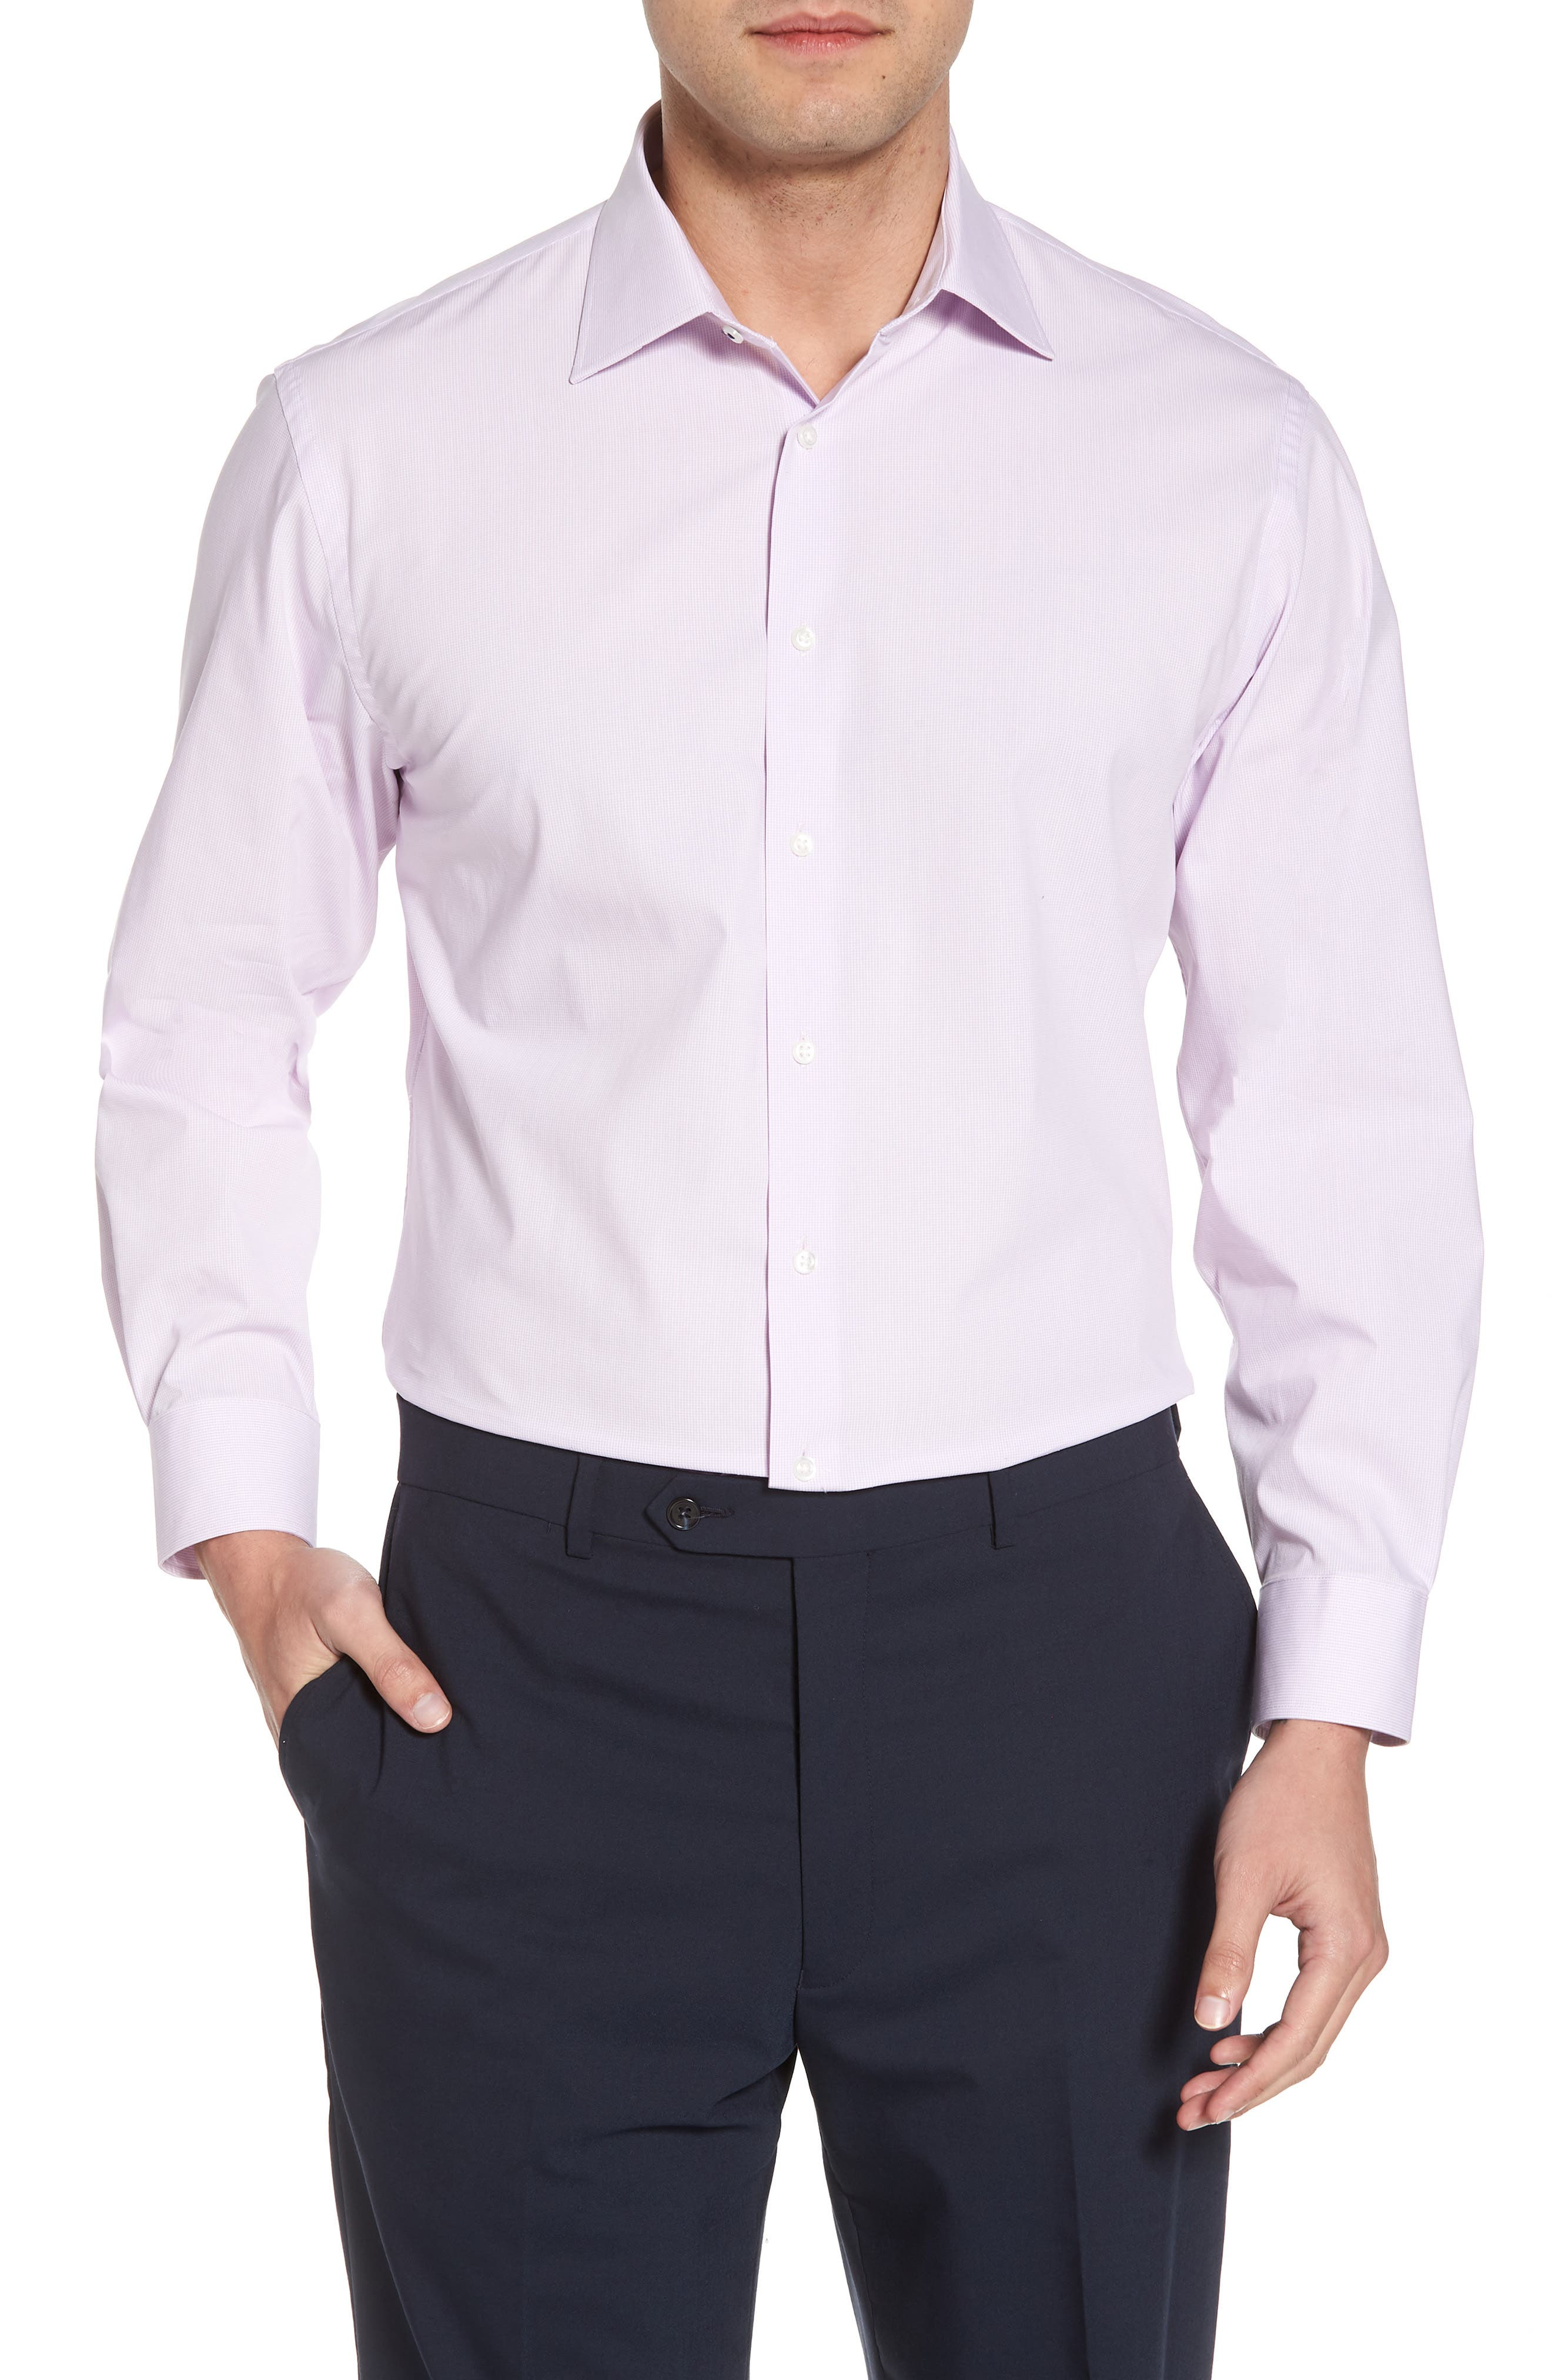 Main Image - Nordstrom Men's Shop Tech-Smart Traditional Fit Micro Check Dress Shirt